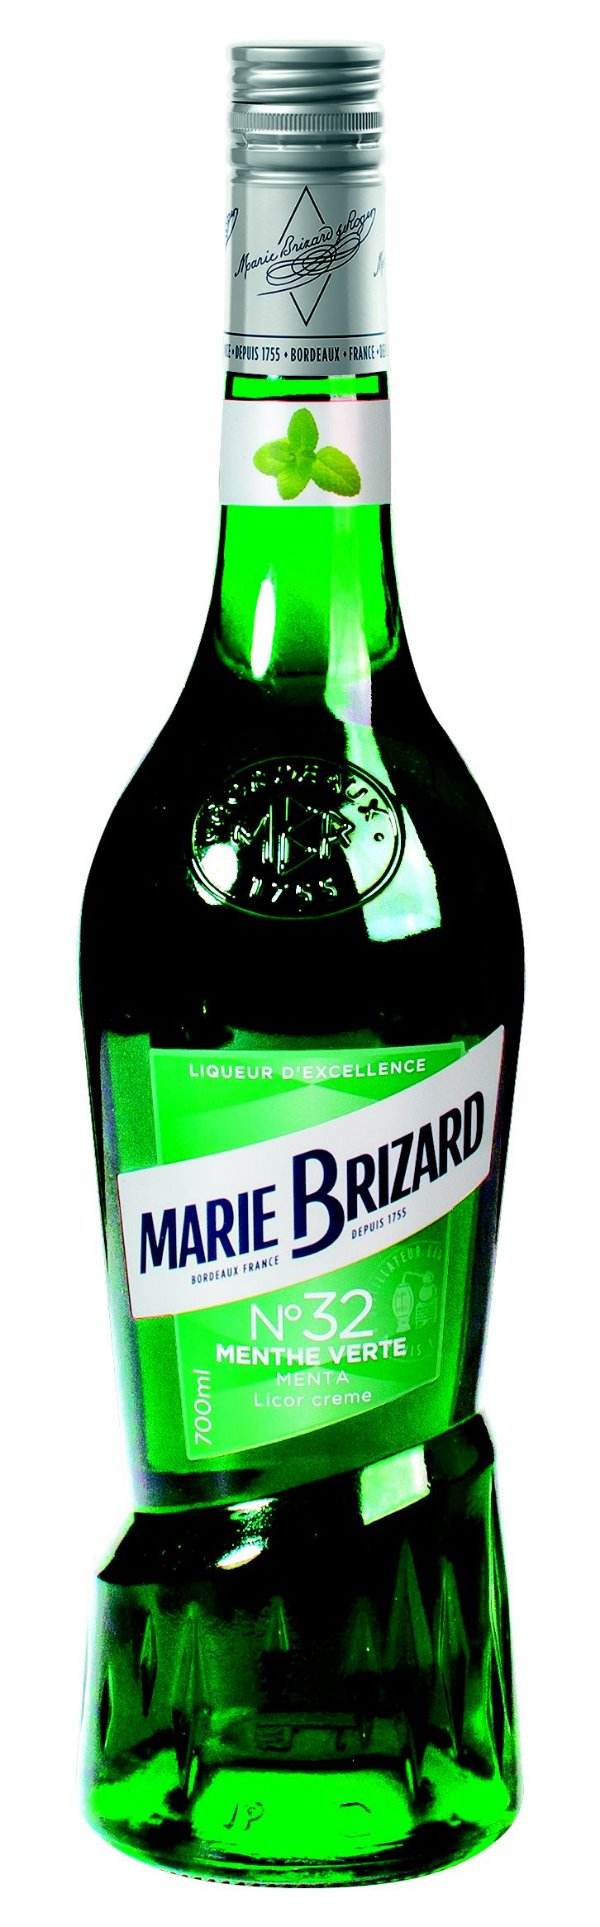 MARIE BRIZARD MENTA 700ML